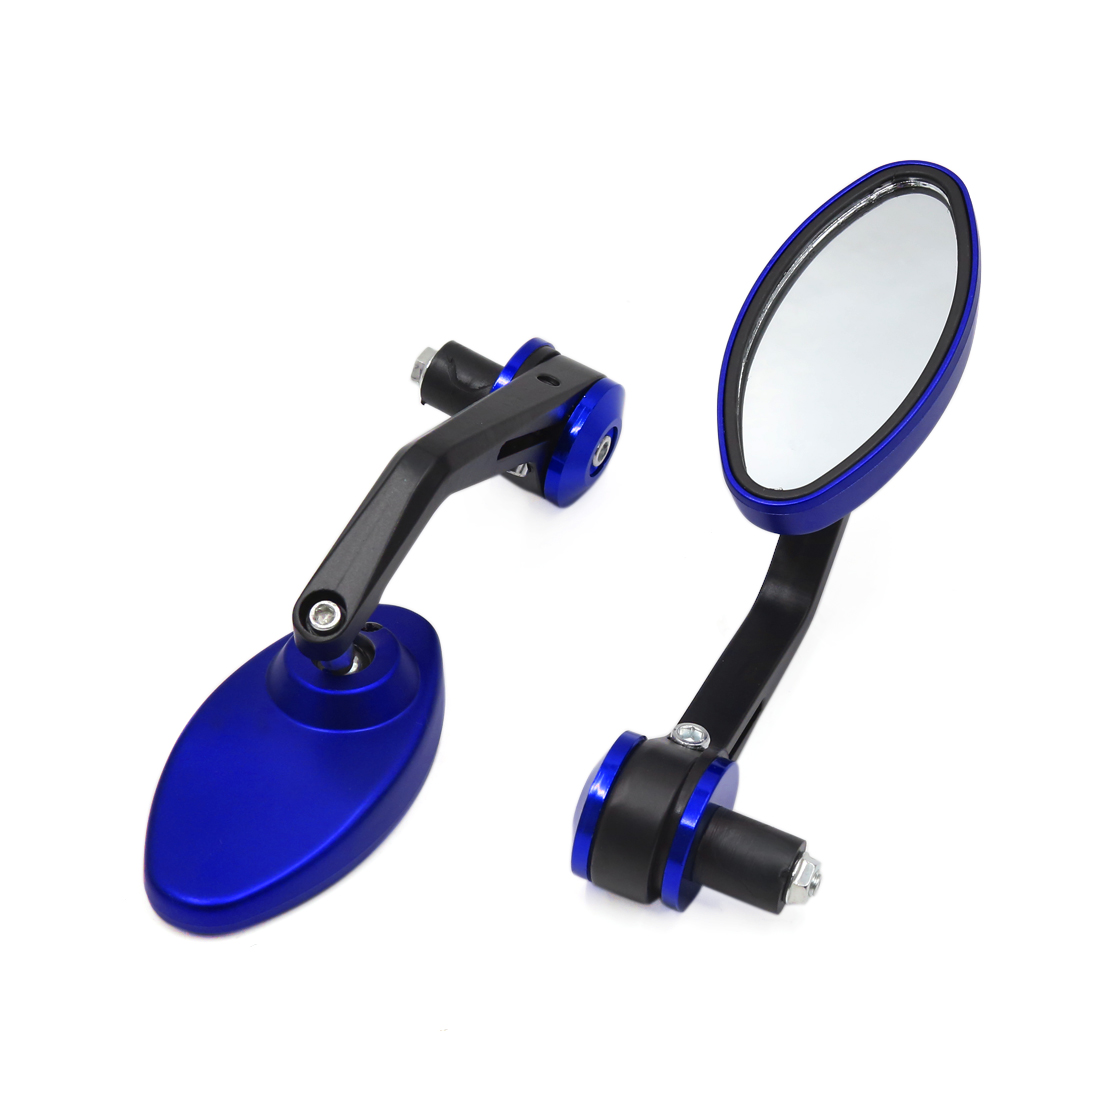 2 Pcs 6mm Thread Dia Oval Shaped Adjustable Motorcycle Rearview Side Mirrors Blue